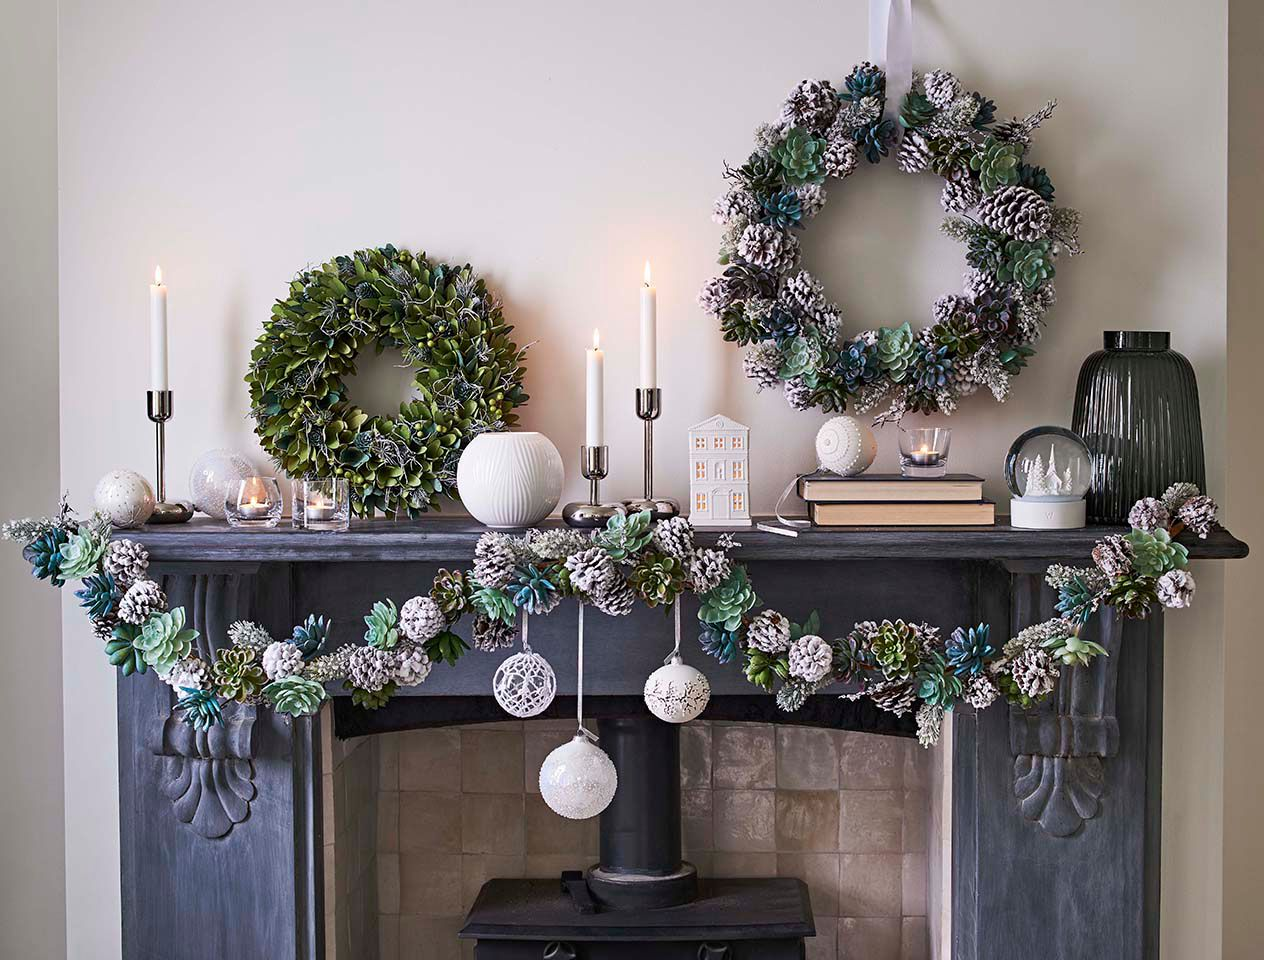 e8d7e6b4c How to decorate with baubles